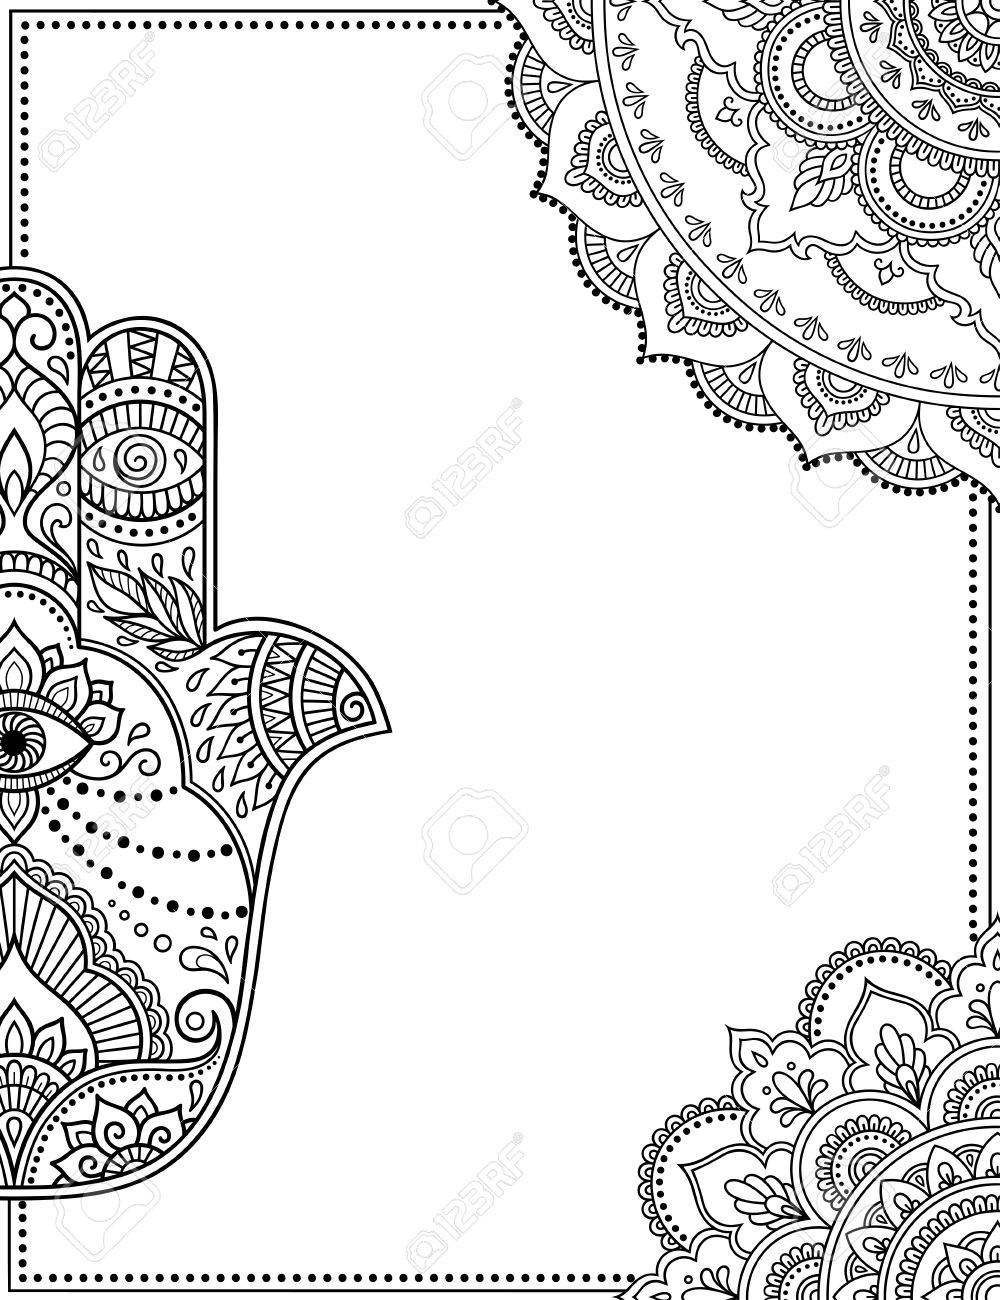 Stylized With Henna Tattoos Decorative Pattern For Decorating ...